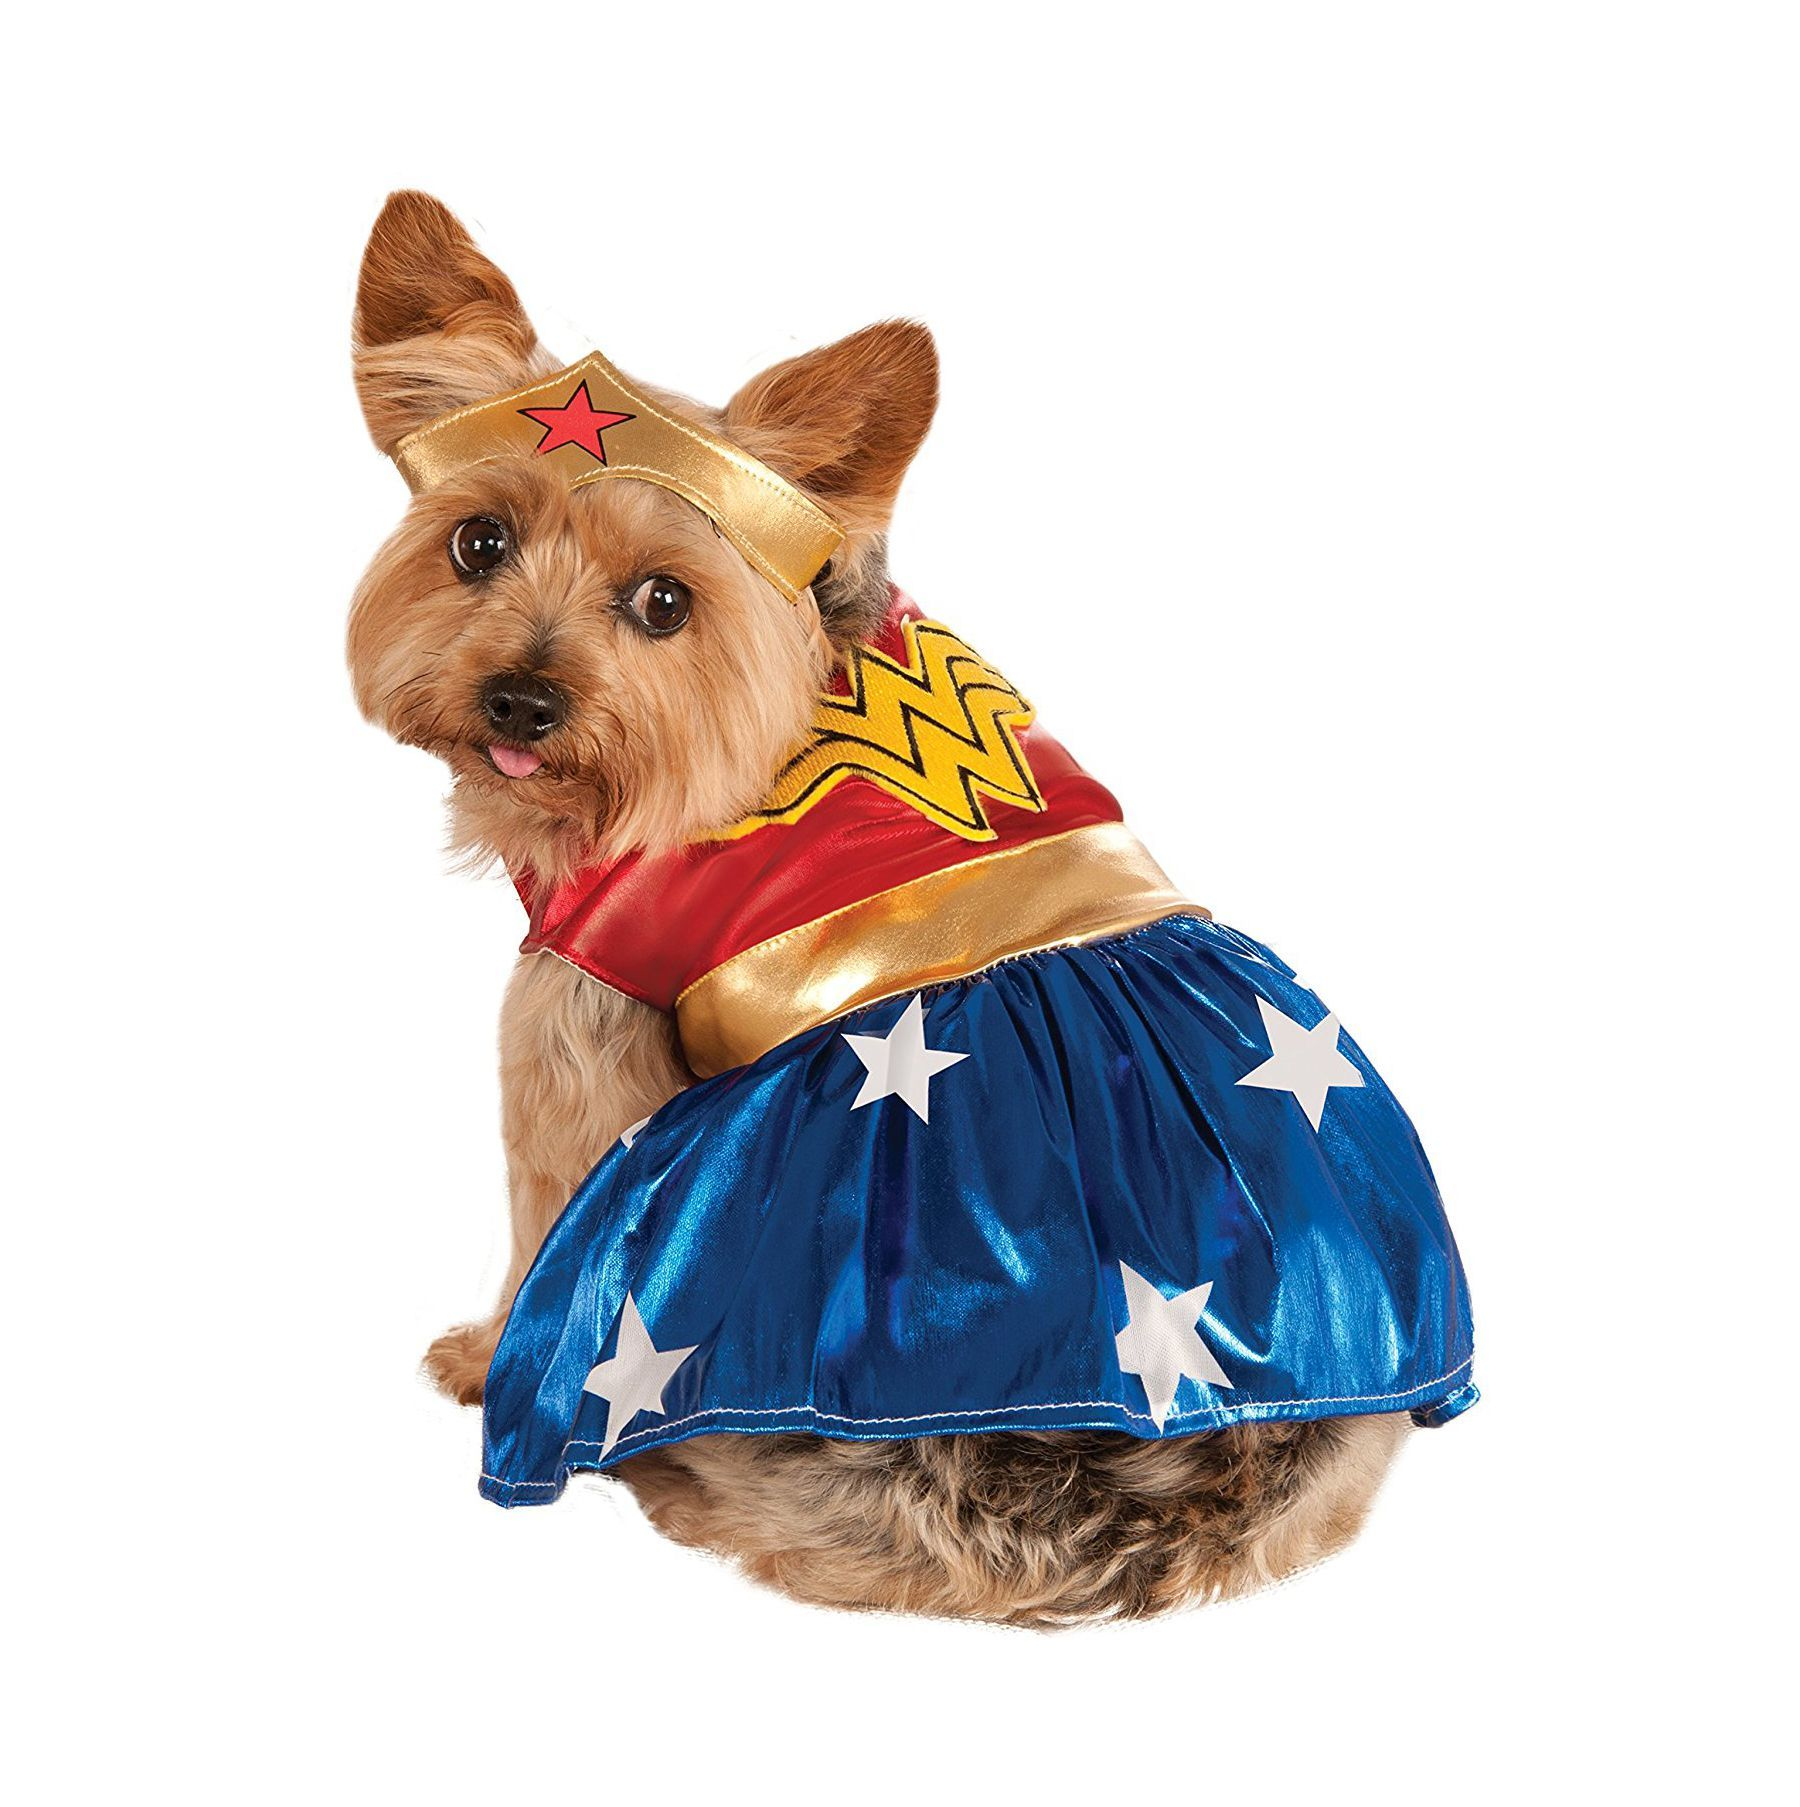 35 funny dog halloween costumes - cute ideas for pet costumes